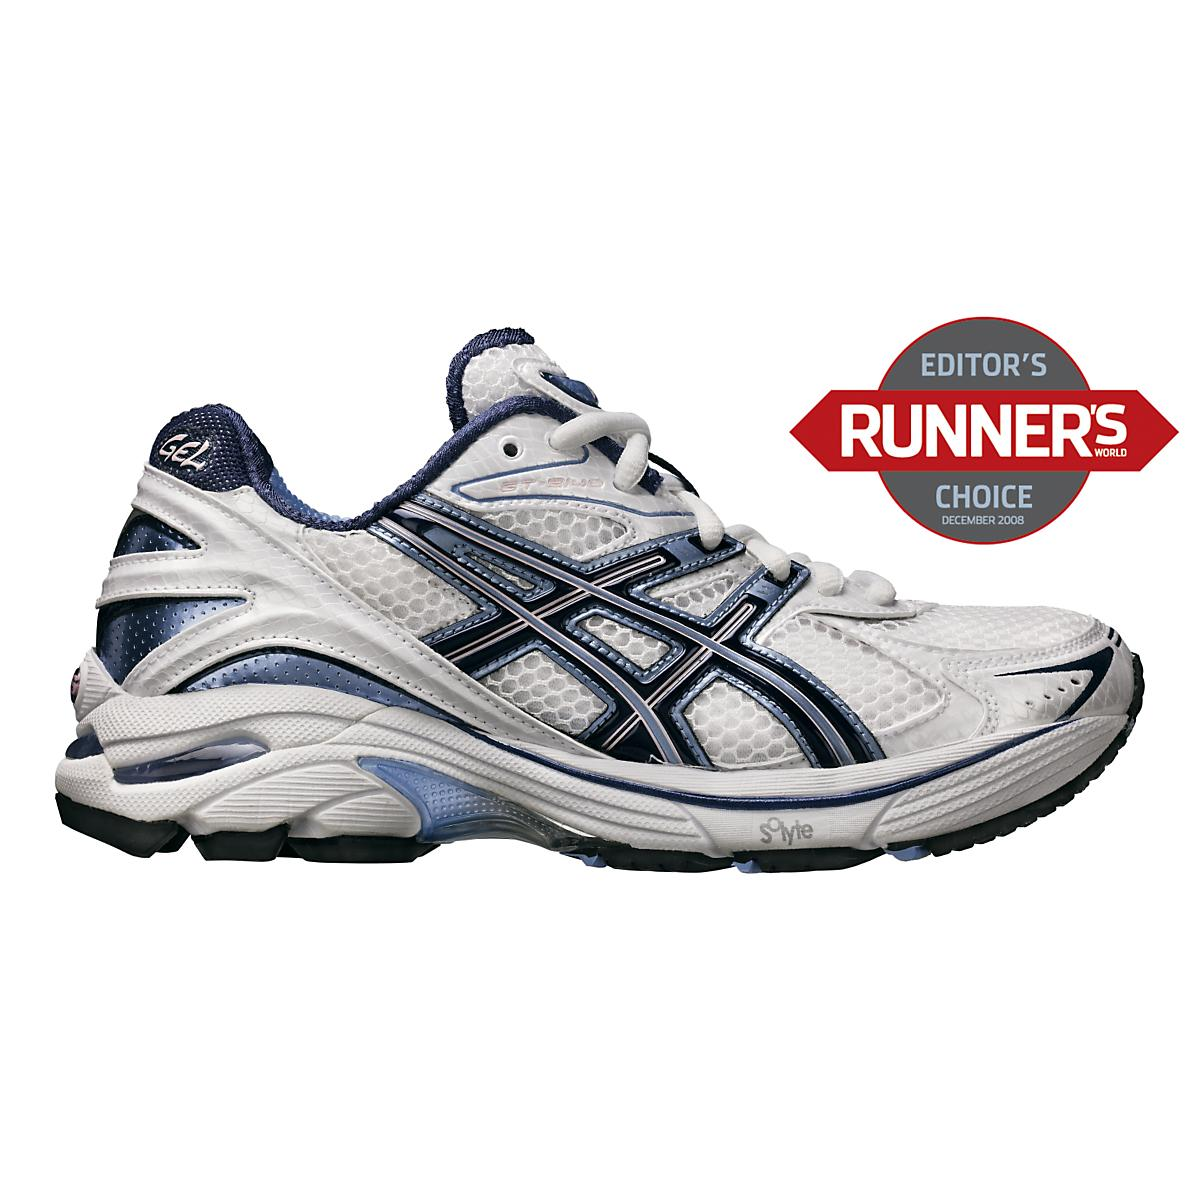 2140 Asics Shoe Sports Running Womens Runner Gt Road At 7aw4ngq